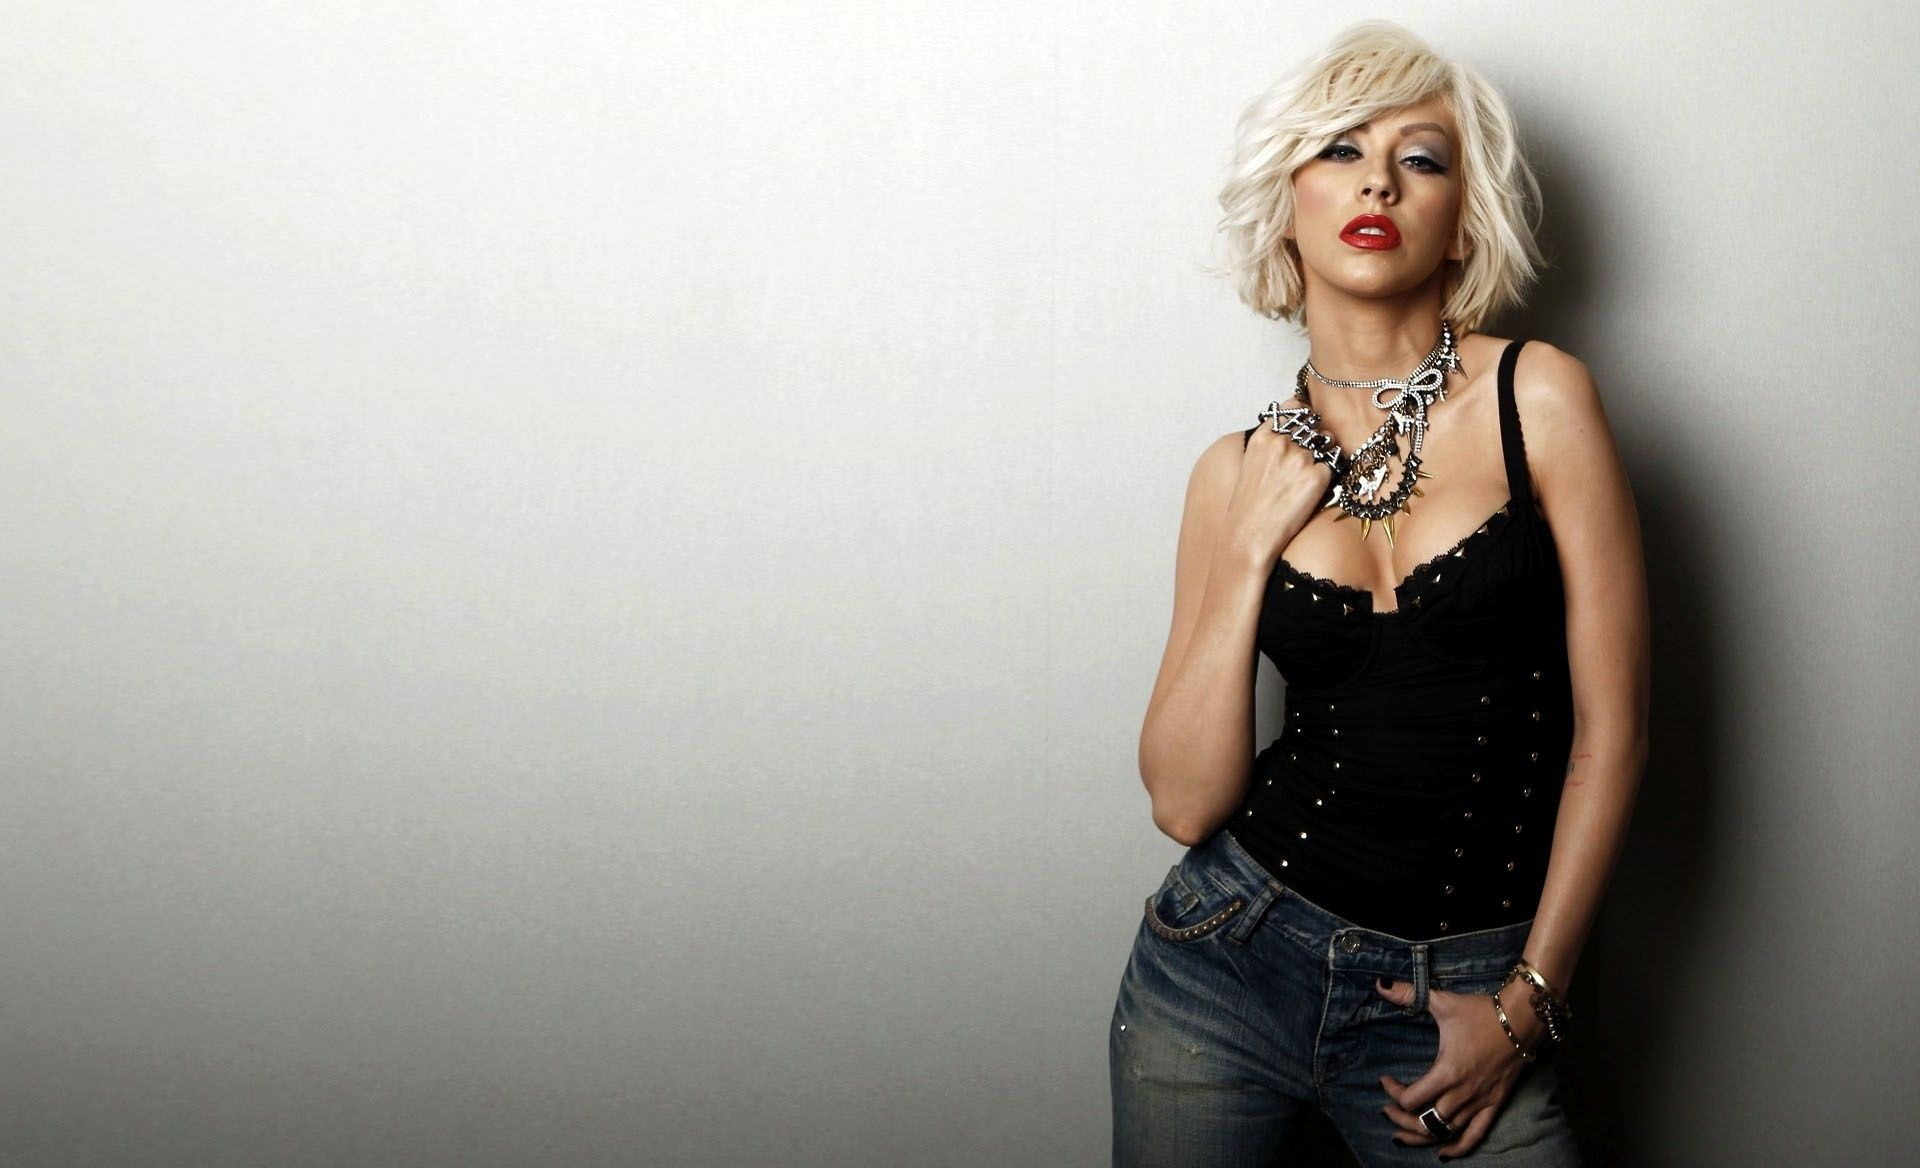 Free Download Christina Aguilera Wallpapers Images Photos Pictures Backgrounds 1920x1168 For Your Desktop Mobile Tablet Explore 35 Christina Aguilera Wallpapers Christina Aguilera Wallpaper Christina Aguilera Wallpapers Wallpaper Of